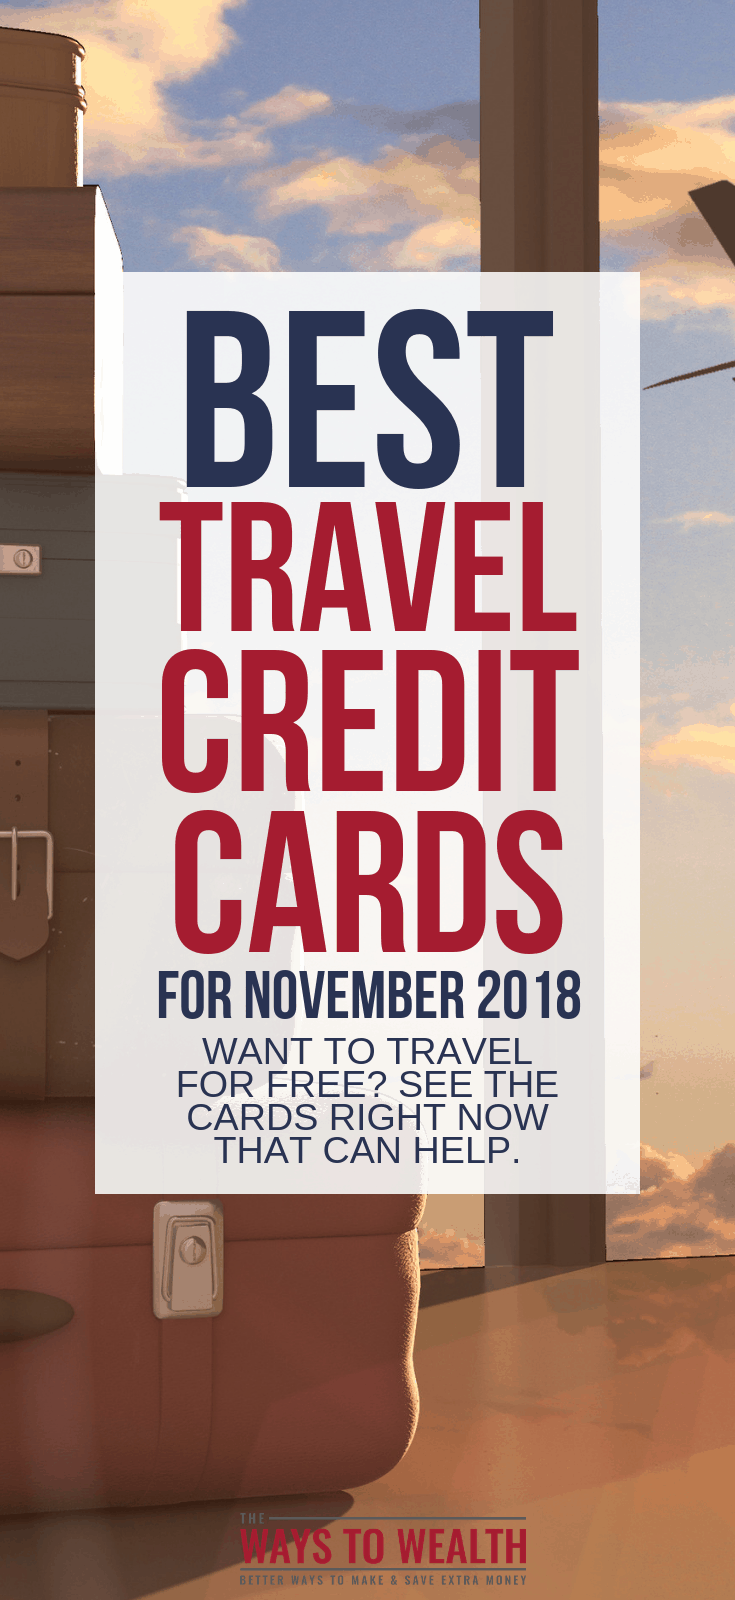 See the best credit cards for travel all in one place. Broken down into the Best Overall Travel Credit Cards, Best Travel Credit Cards for Beginners, Best Business Travel Cards, Best Cards for International Travel, Best Airline Cards, Best Hotel Credit Cards, Best Travel Credit Cards With N0-Annual Fee, & The Ultimate Cash Back Credit Card Hack.#travel #budgettravel #travelhacking